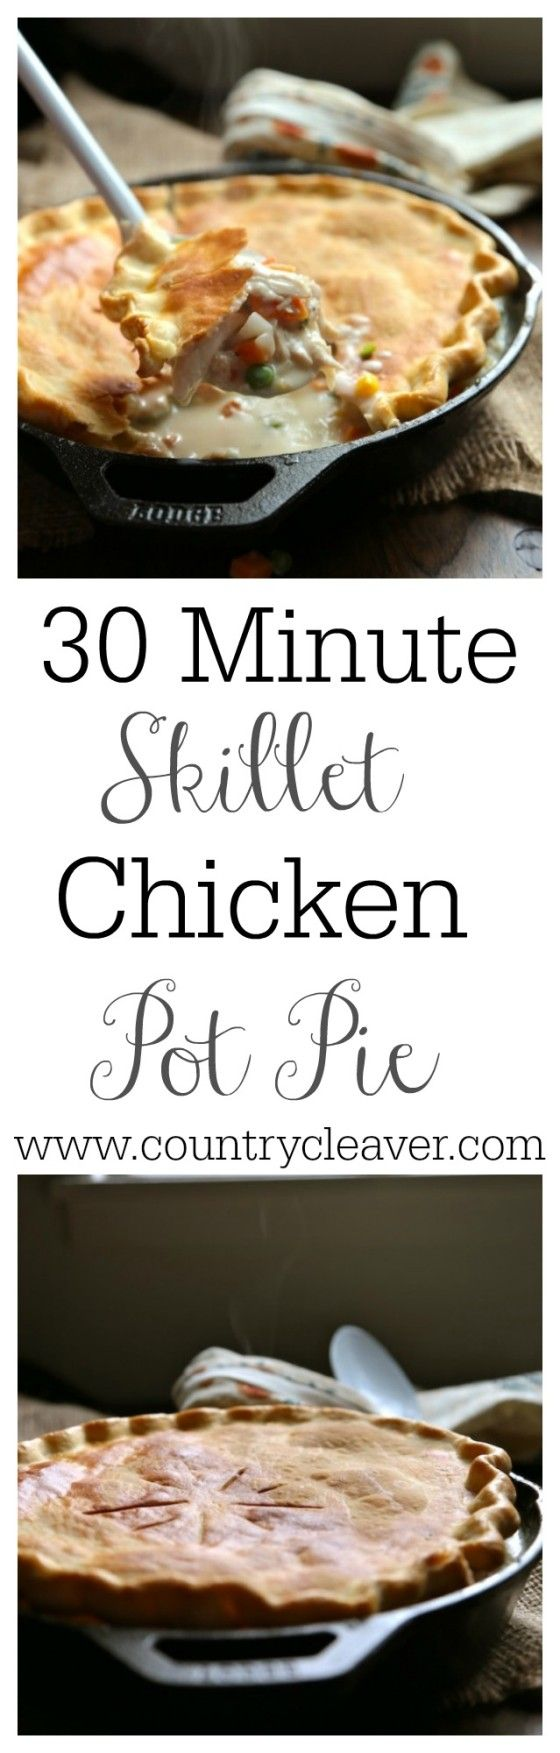 30 Minute Skillet Chicken Pot Pie isn't a myth! It's just like grandma used to make, just faster!